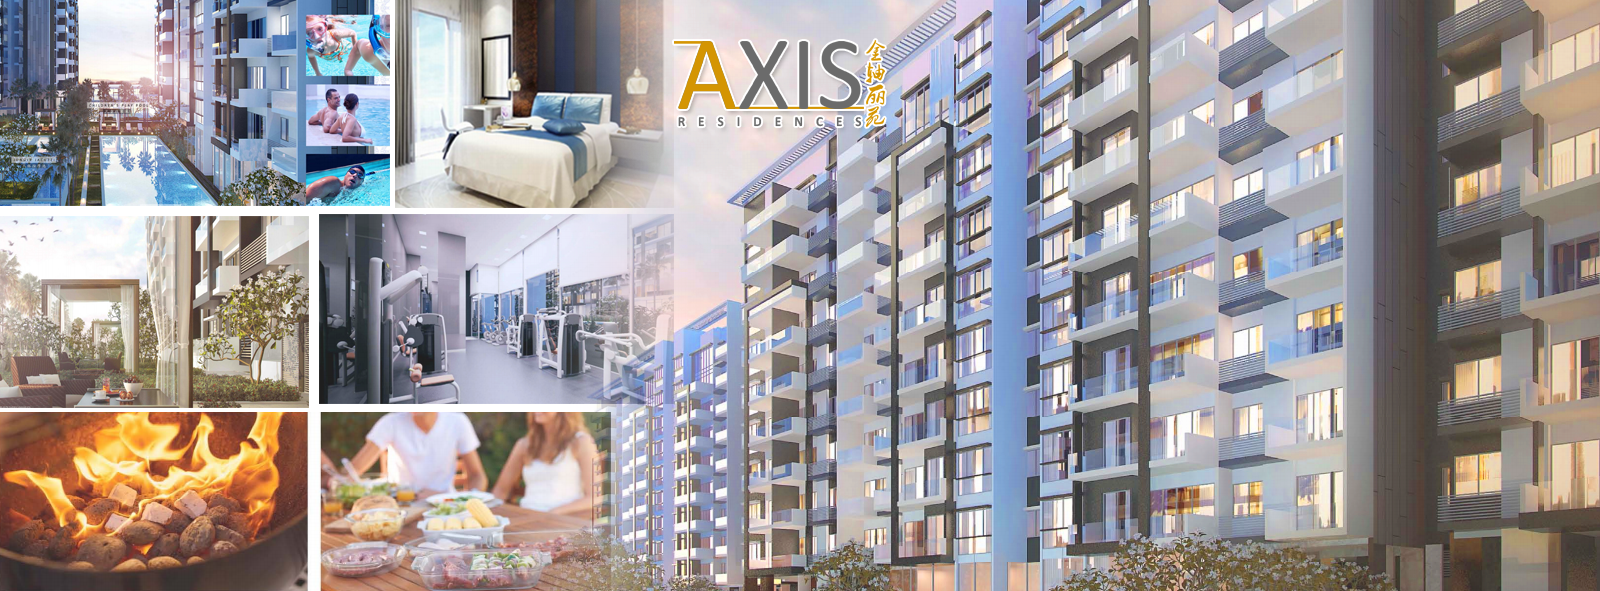 Axis Residences - new condominium  in Phnom Penh Cambodia